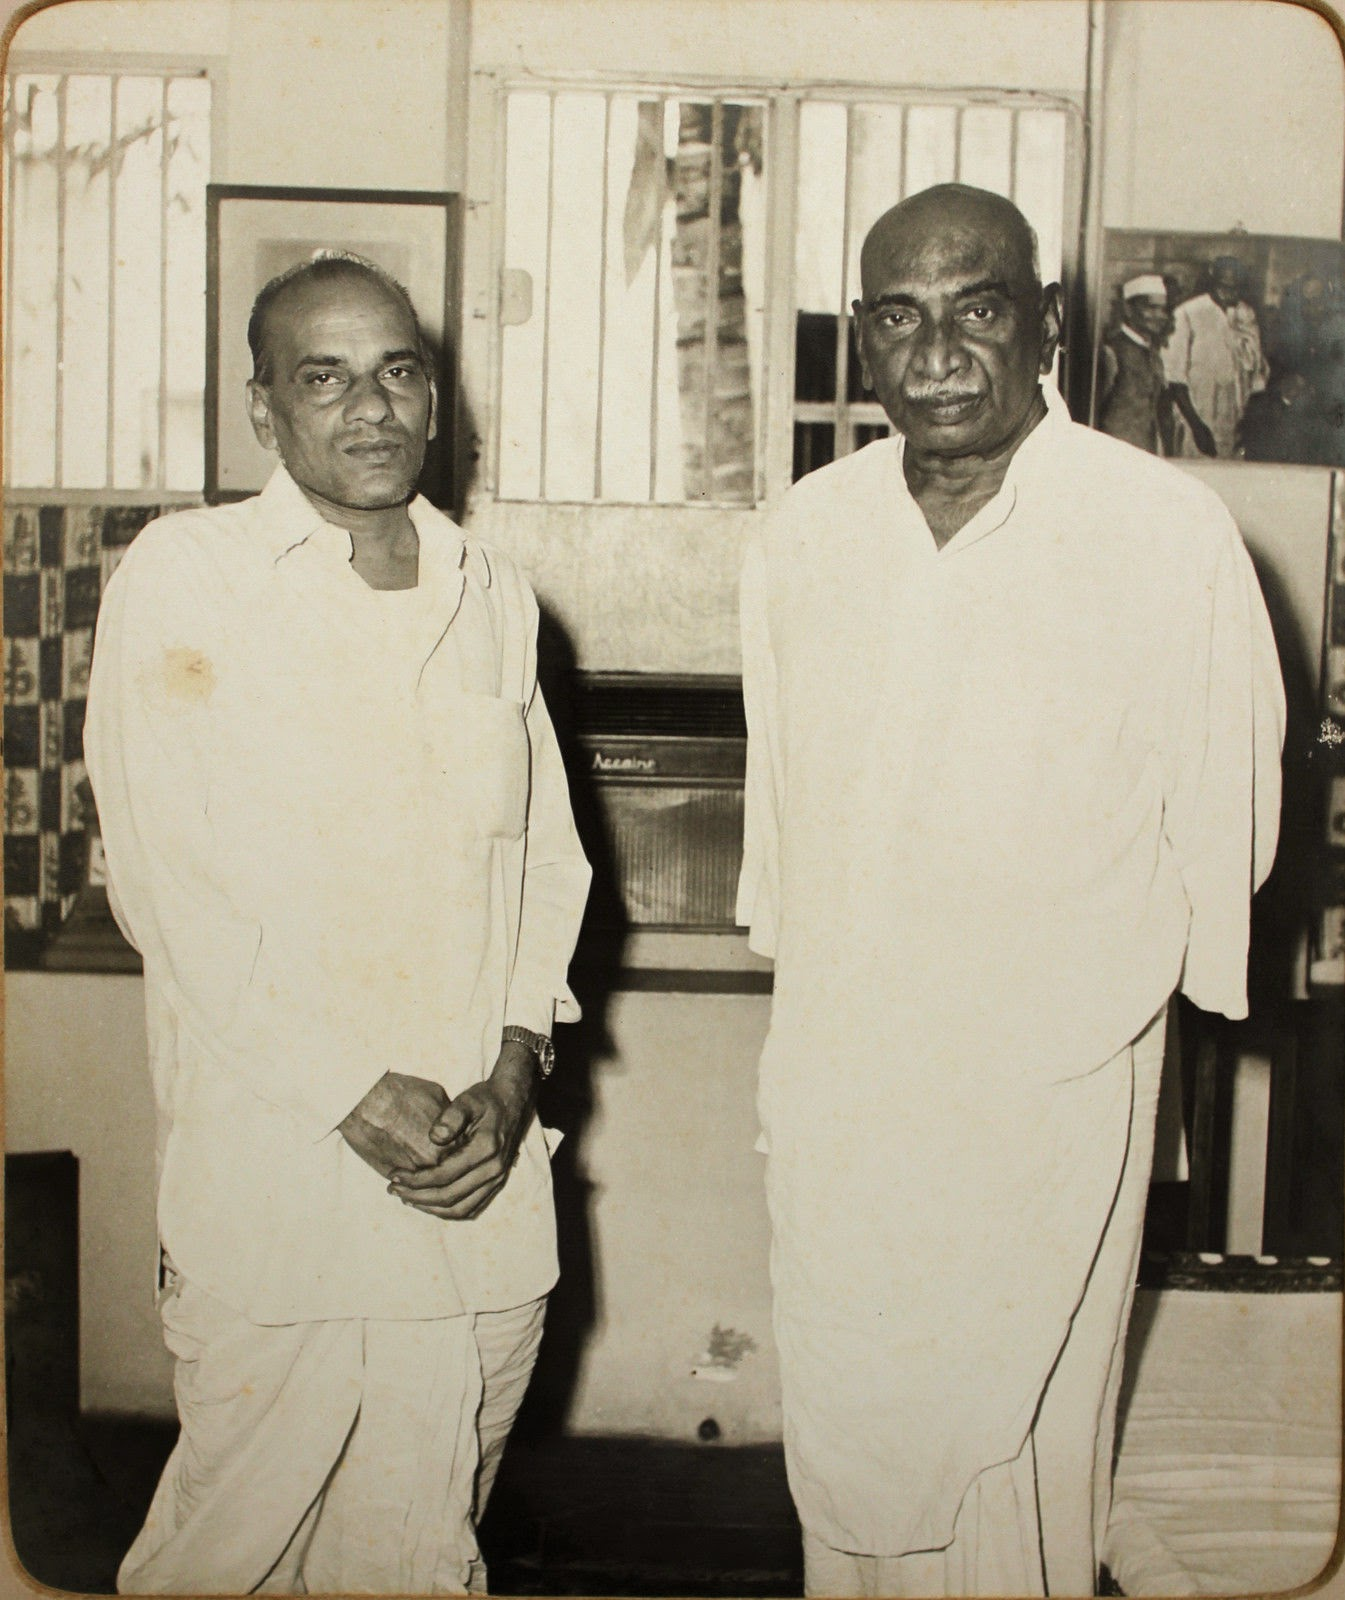 Indian National Congress Leader K. Kamraj (on the right) with a Friend